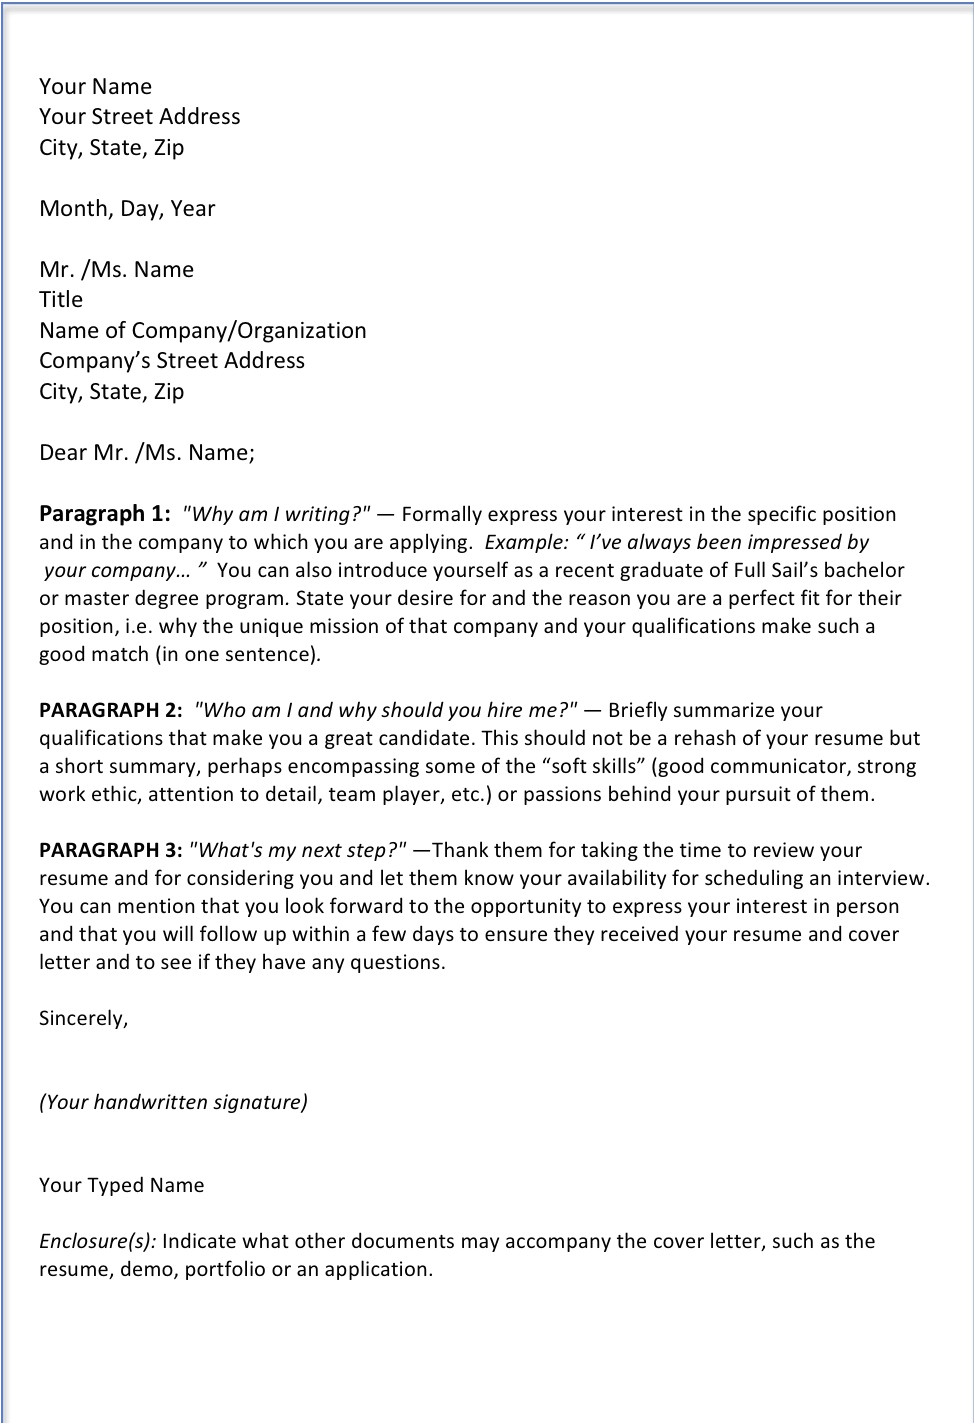 how should you write a cover letter